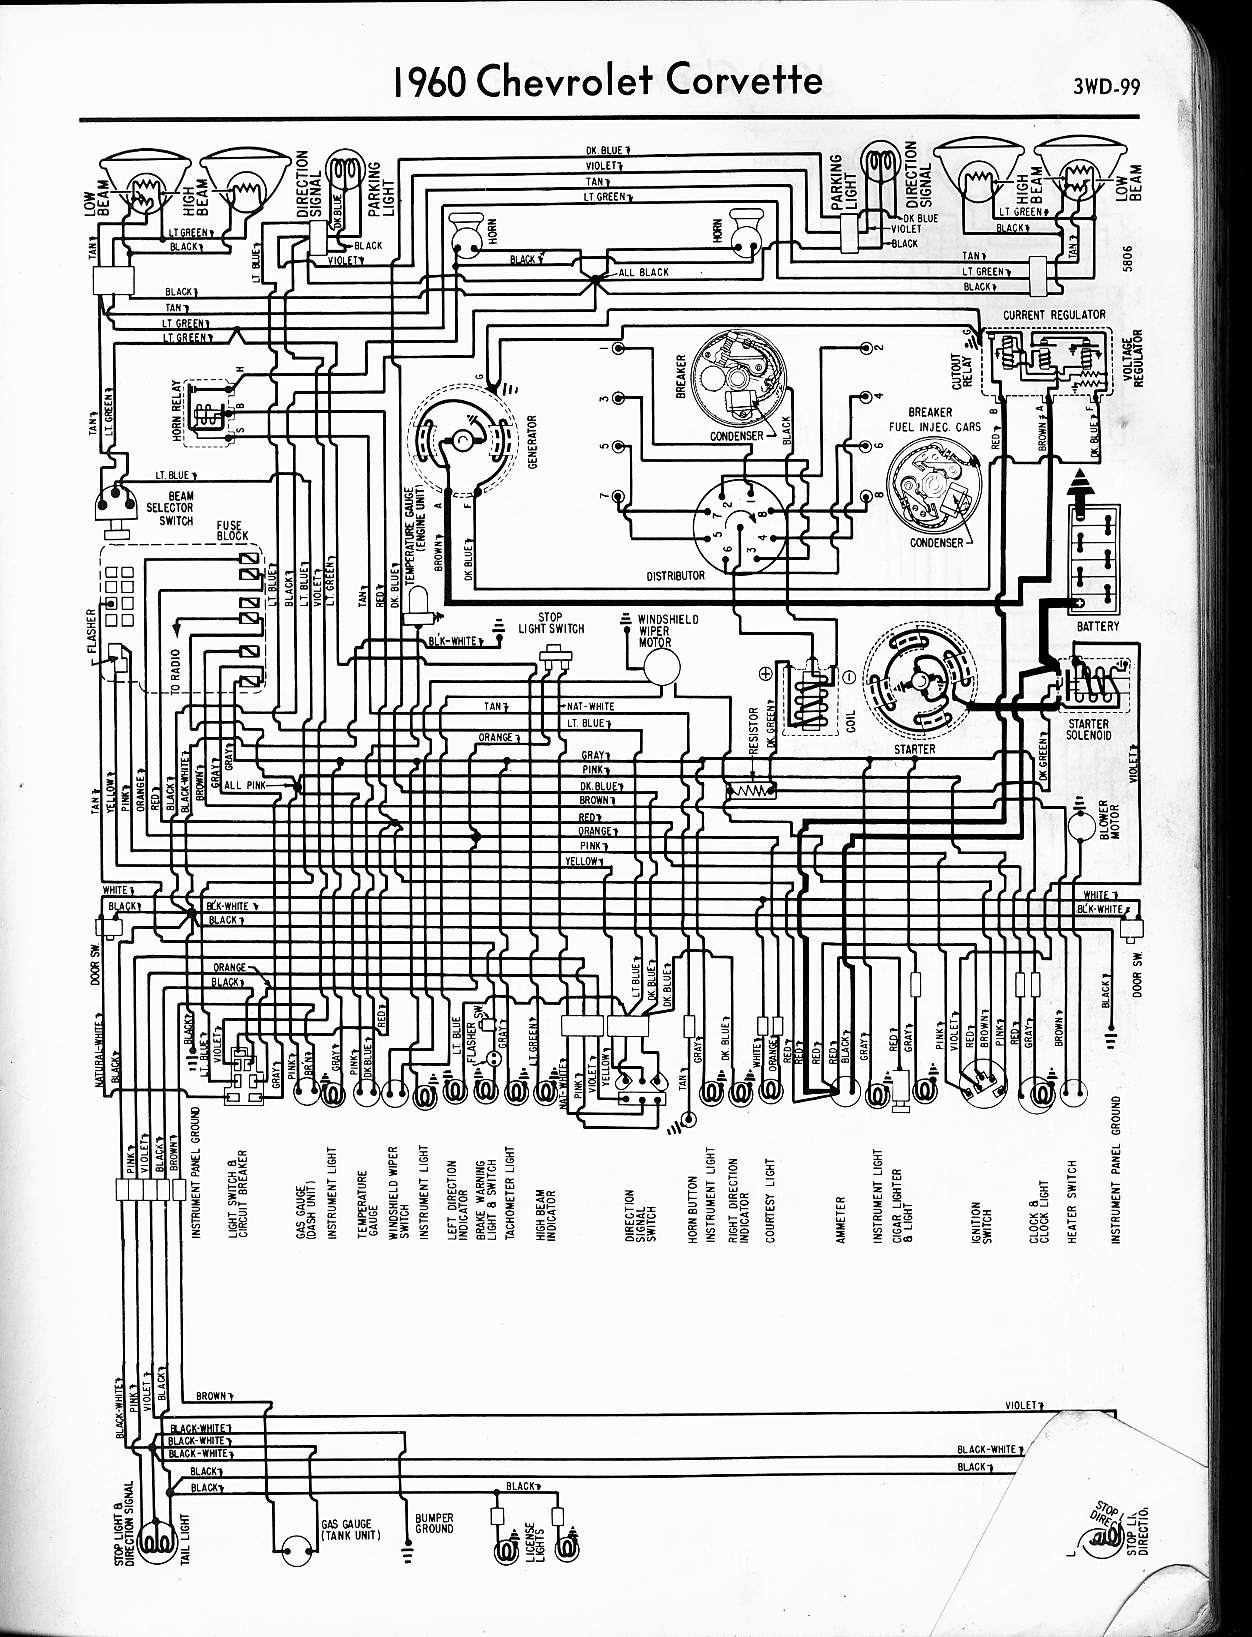 Gas Tank Wiring Diagram For 1985 Chevy Pu | Wiring Liry Gas Tank Wiring Diagram For Chevy Pu on